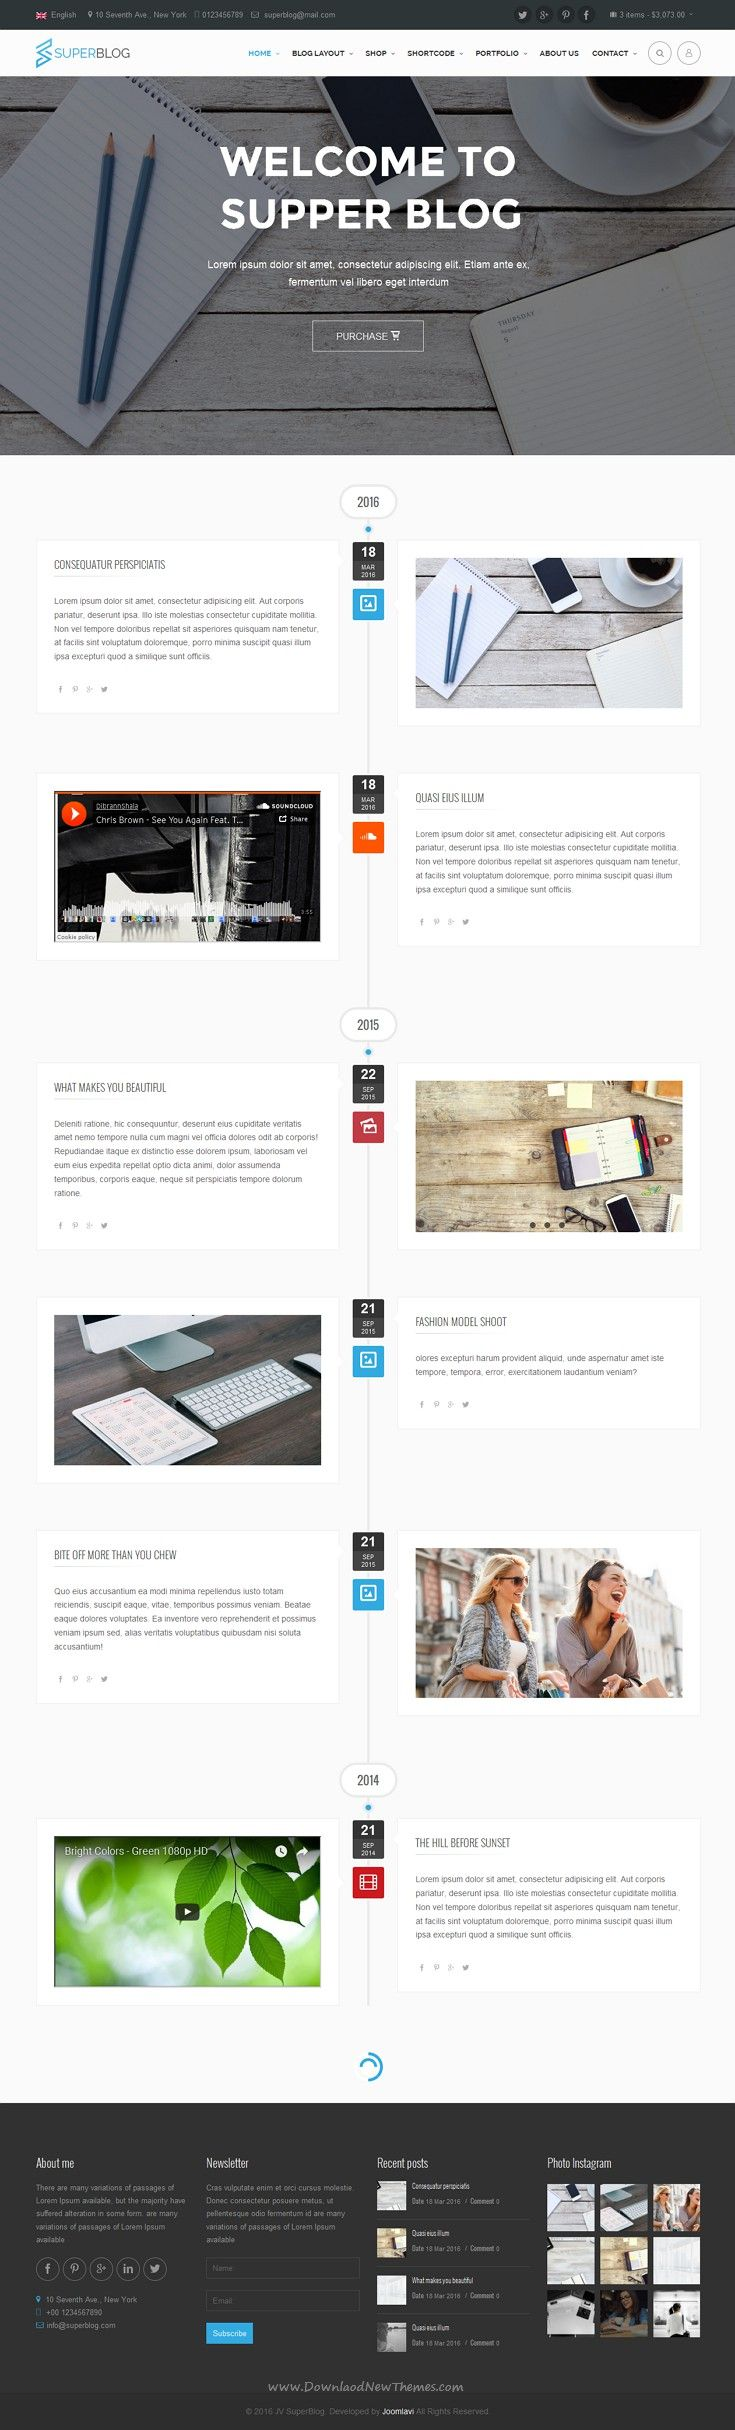 9 best Dating Web Templates images on Pinterest | Coffee break ...